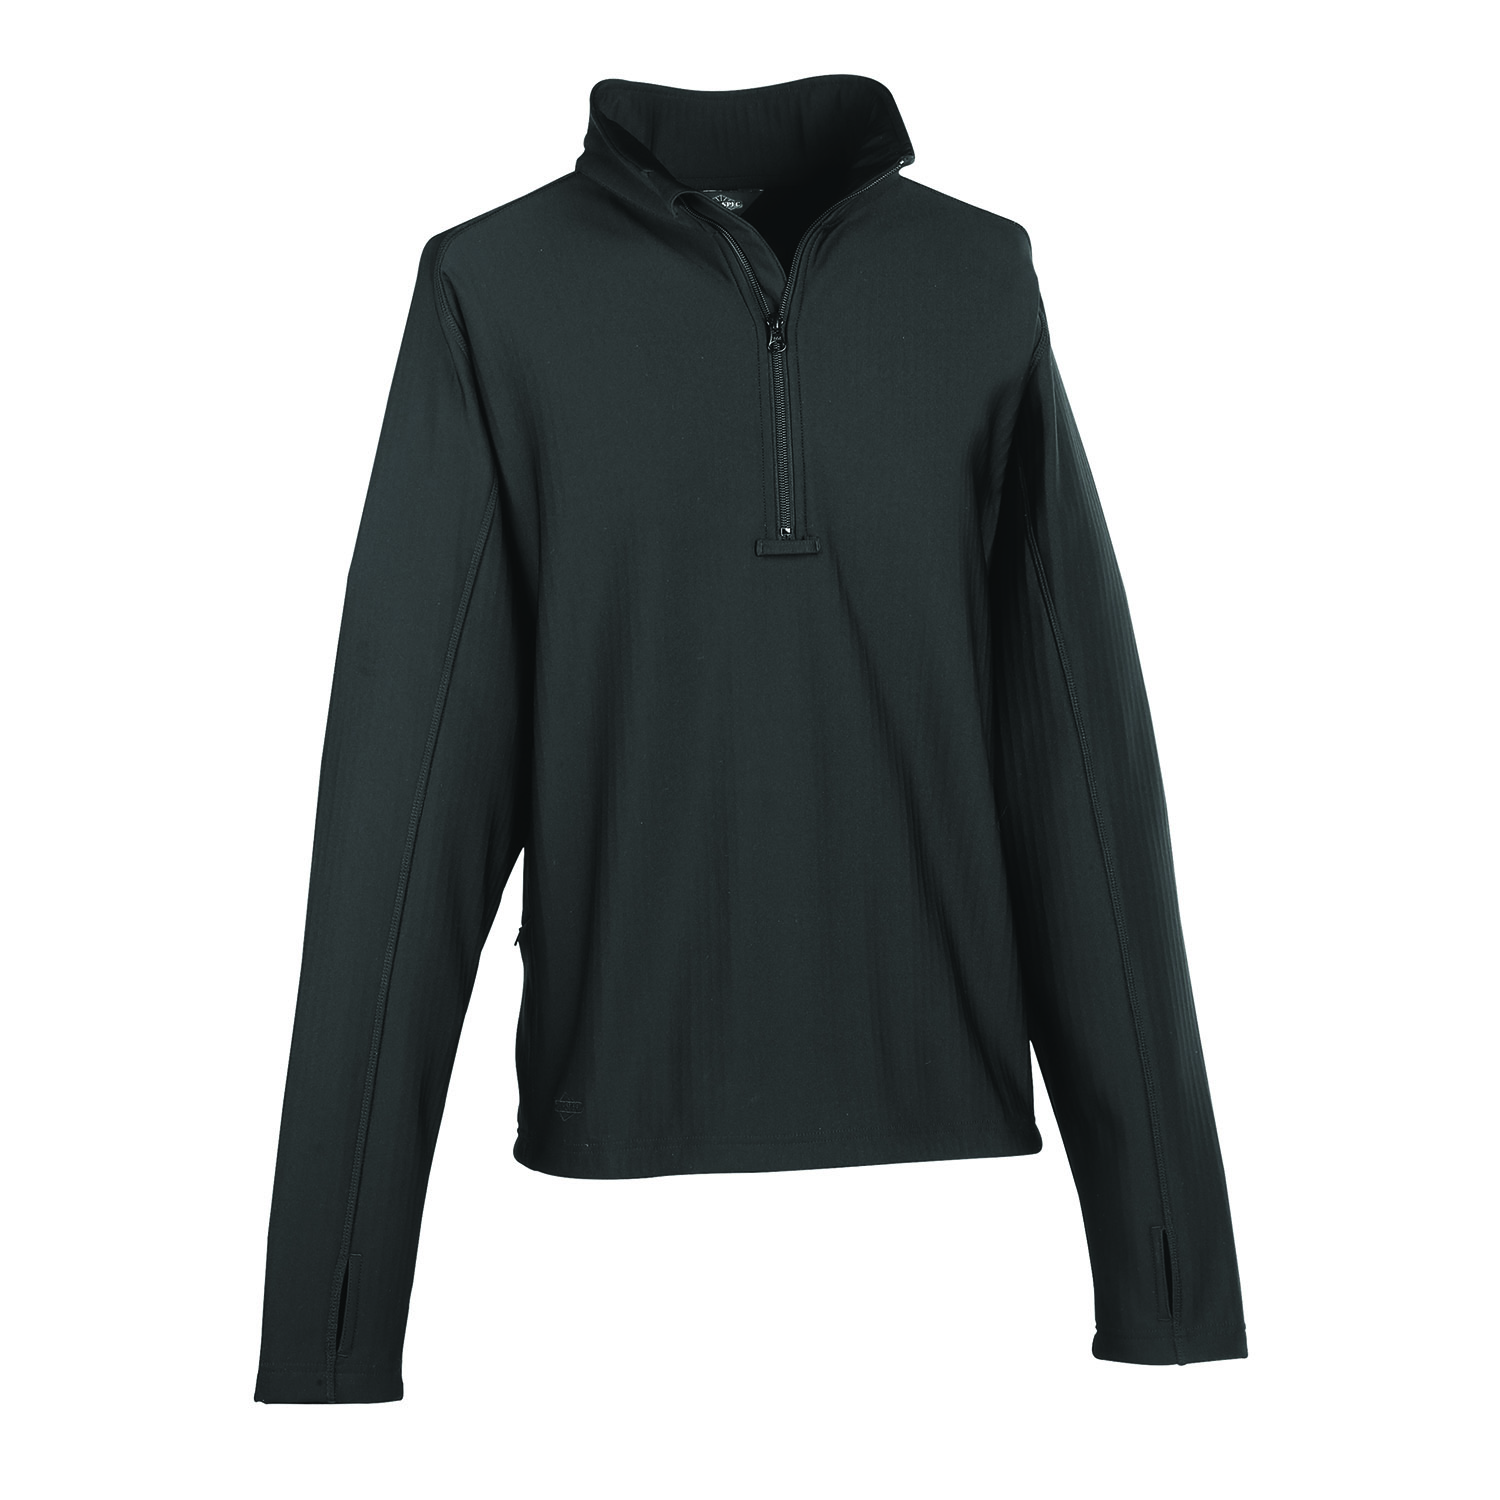 Tru-Spec 24-7 Grid Fleece Quarter-Zip Pullover